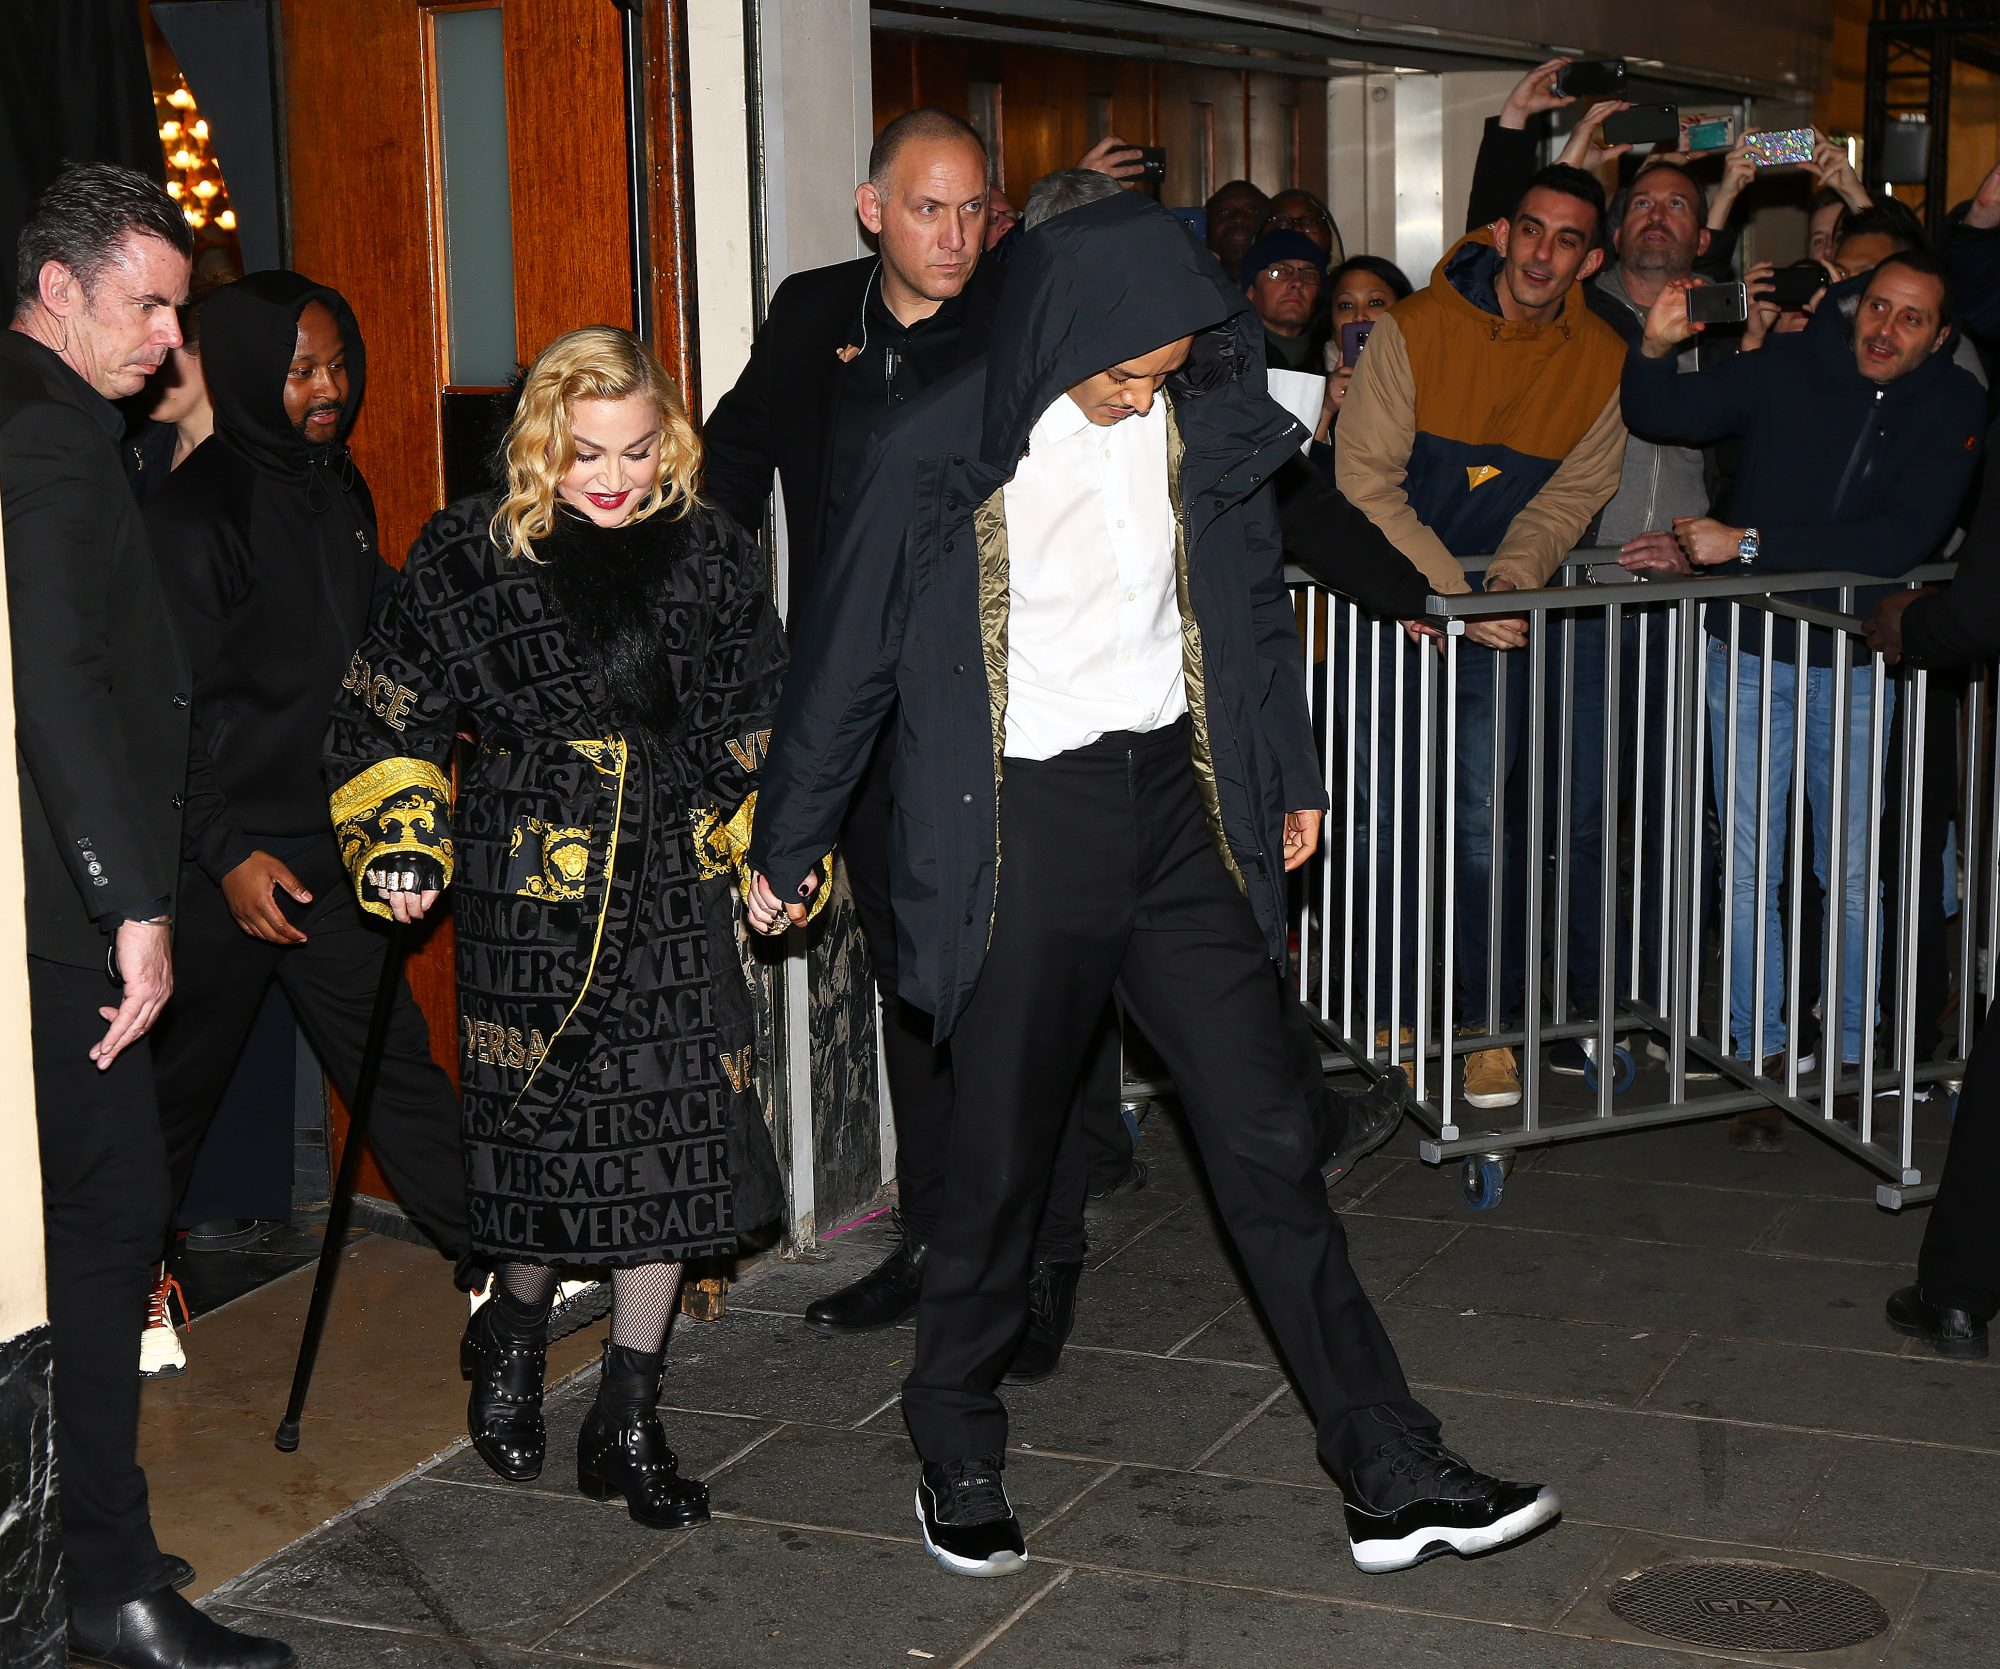 Madonna and boyfriend Ahlamalik Williams leave the 'Le Grand Rex' at the end of her concert in Paris.